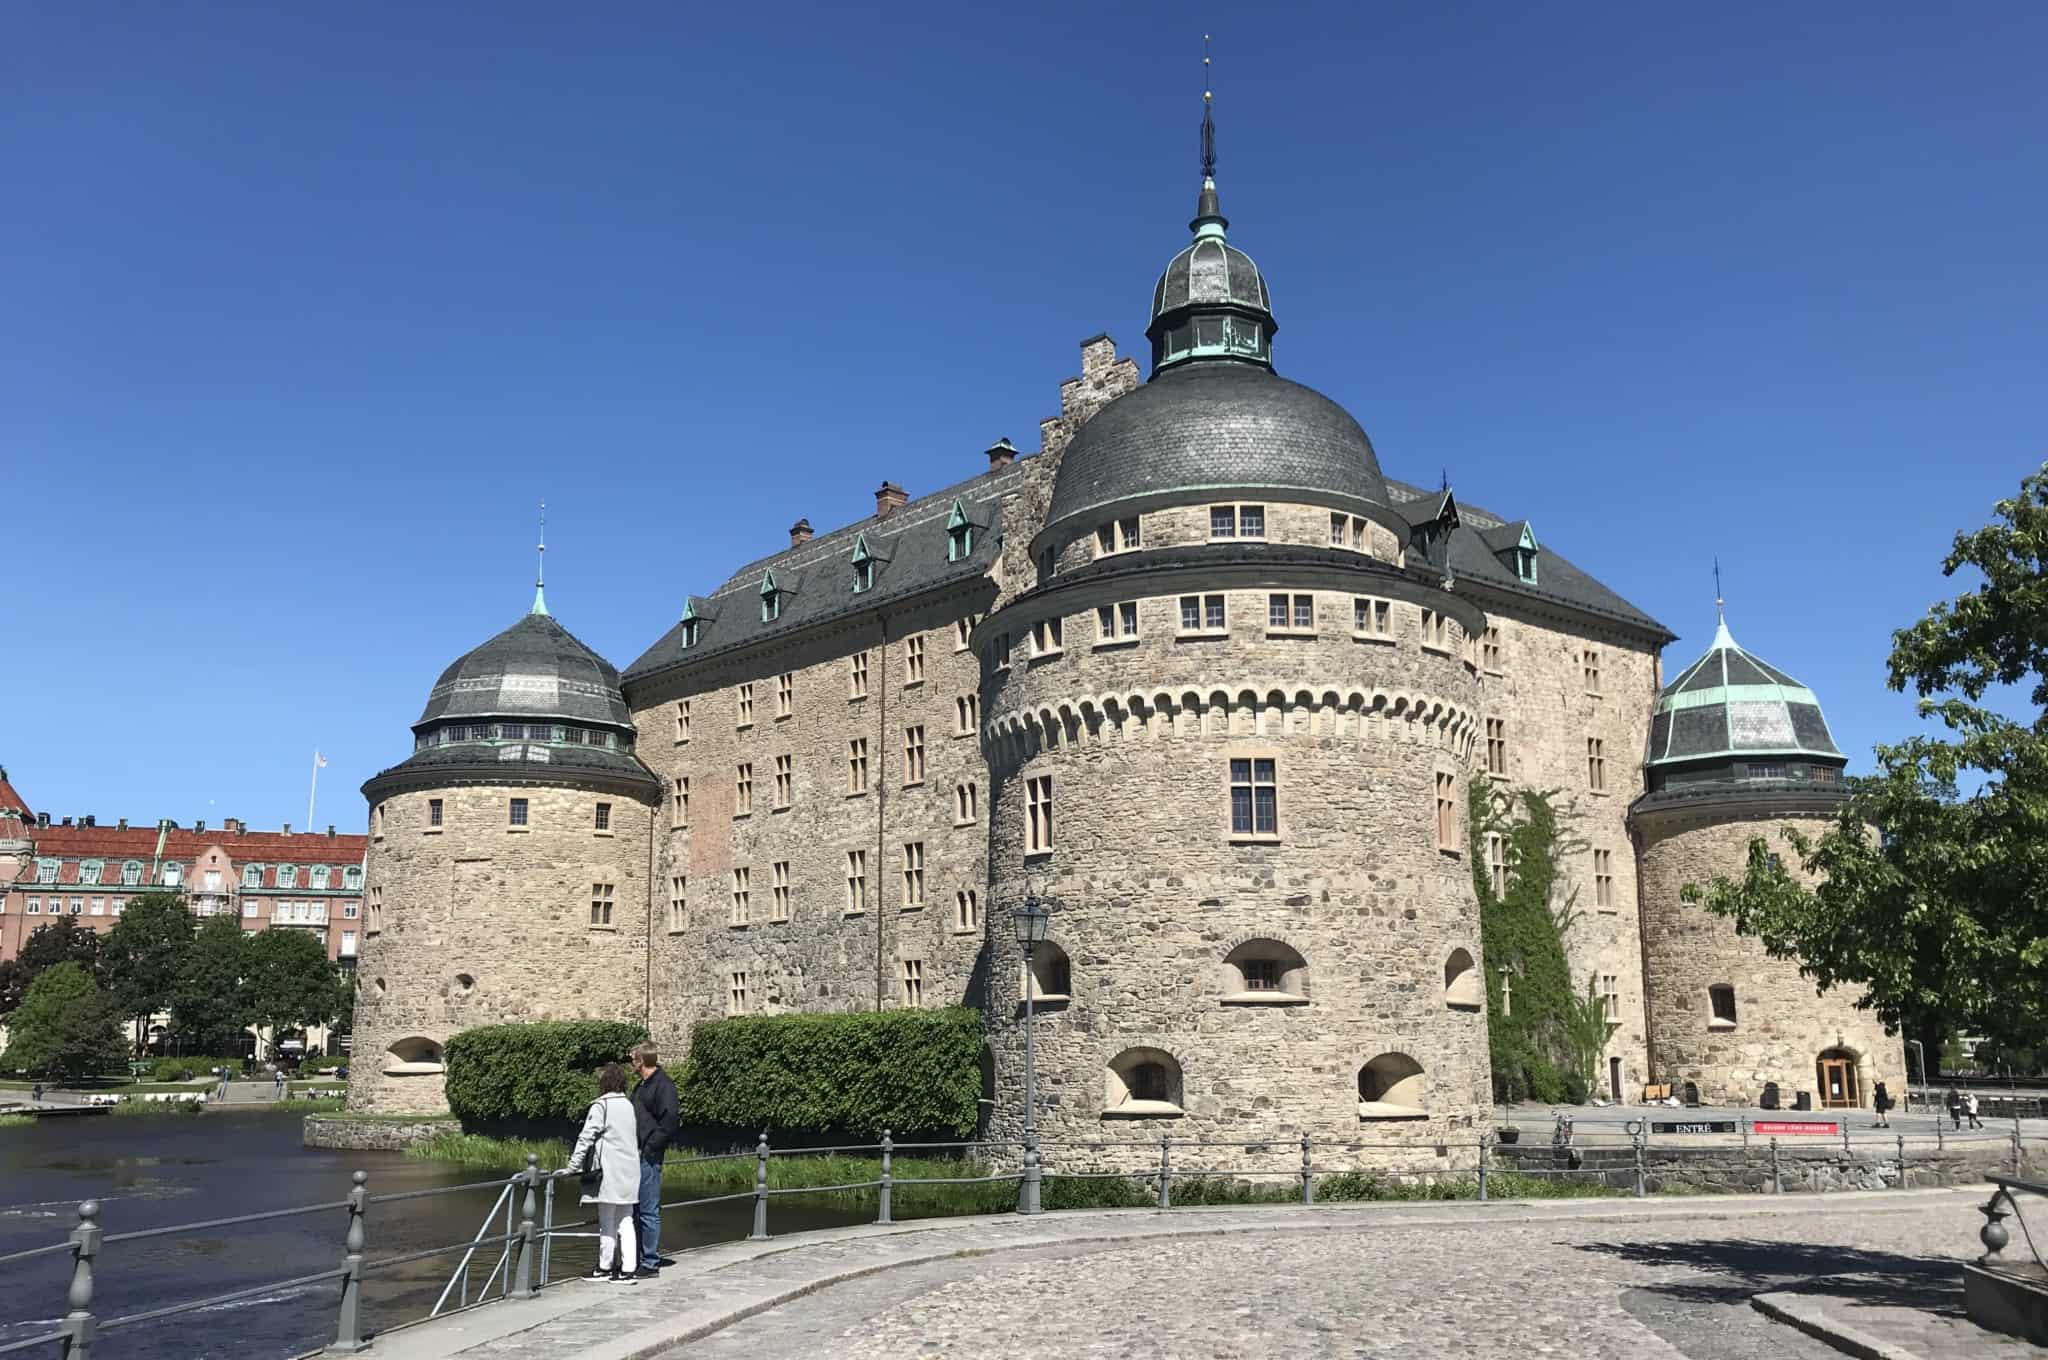 Travel back in time at Örebro's old royal palace. Here you can go on exciting ghost walks, look for treasures and go on guided tours.